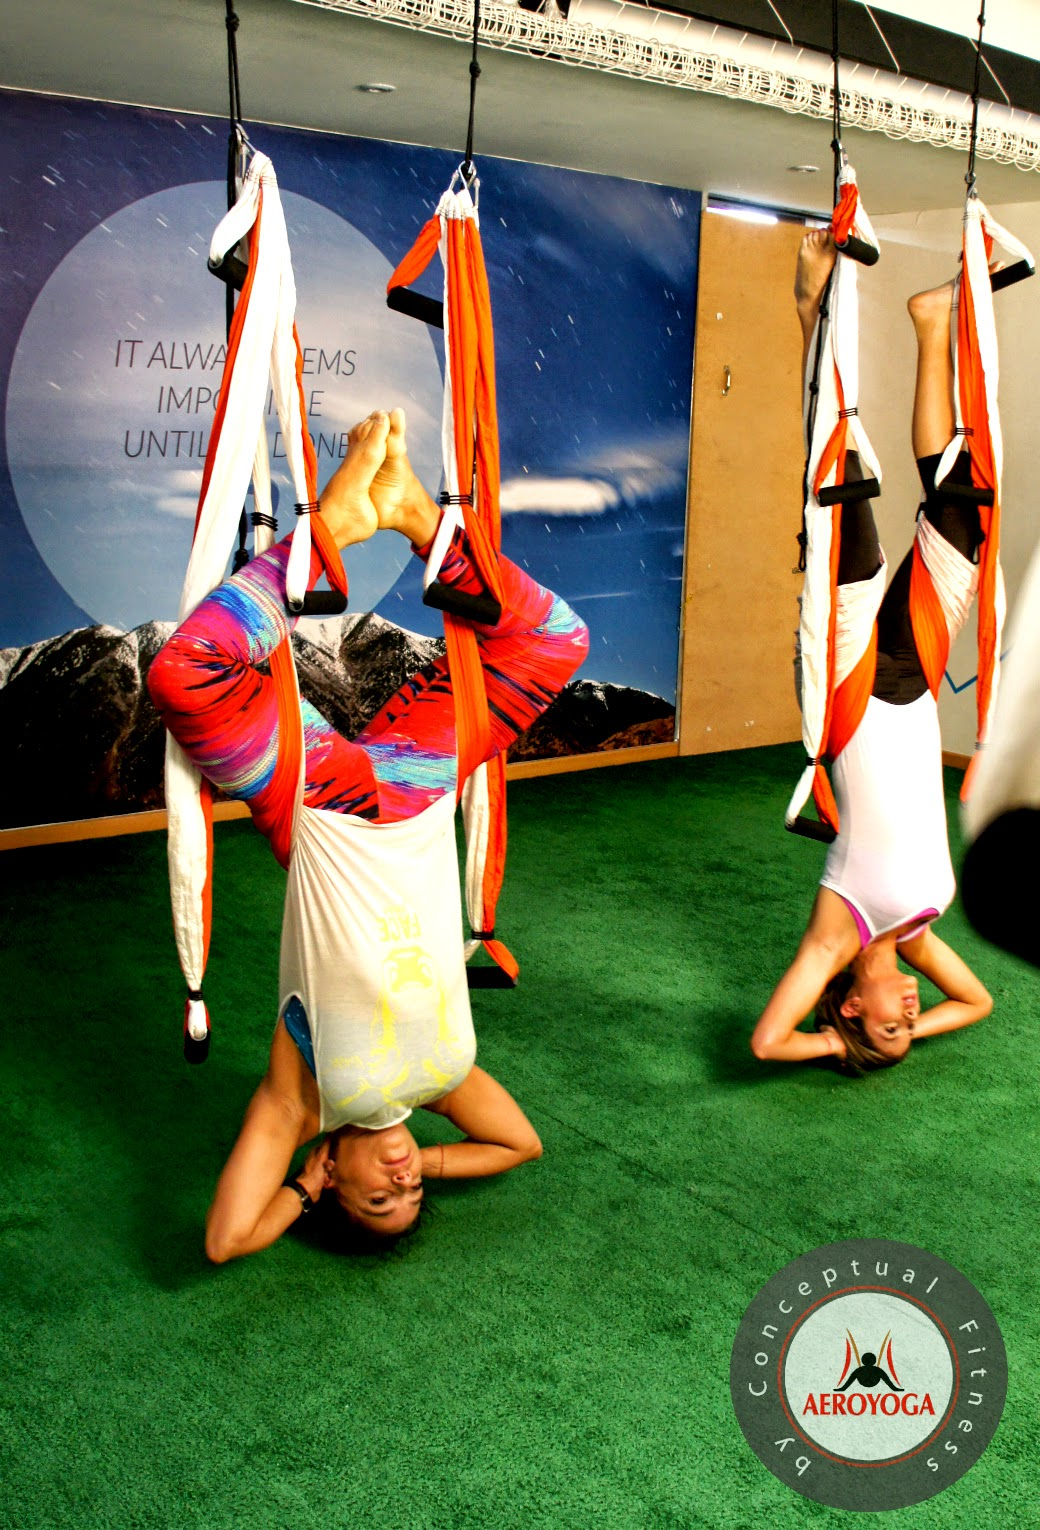 RAFAEL MARTINEZ: AERIAL YOGA TV PRESS HEALTH BEAUTY WELLNESS, AEROYOGA WITH SUSANA SANCHEZ